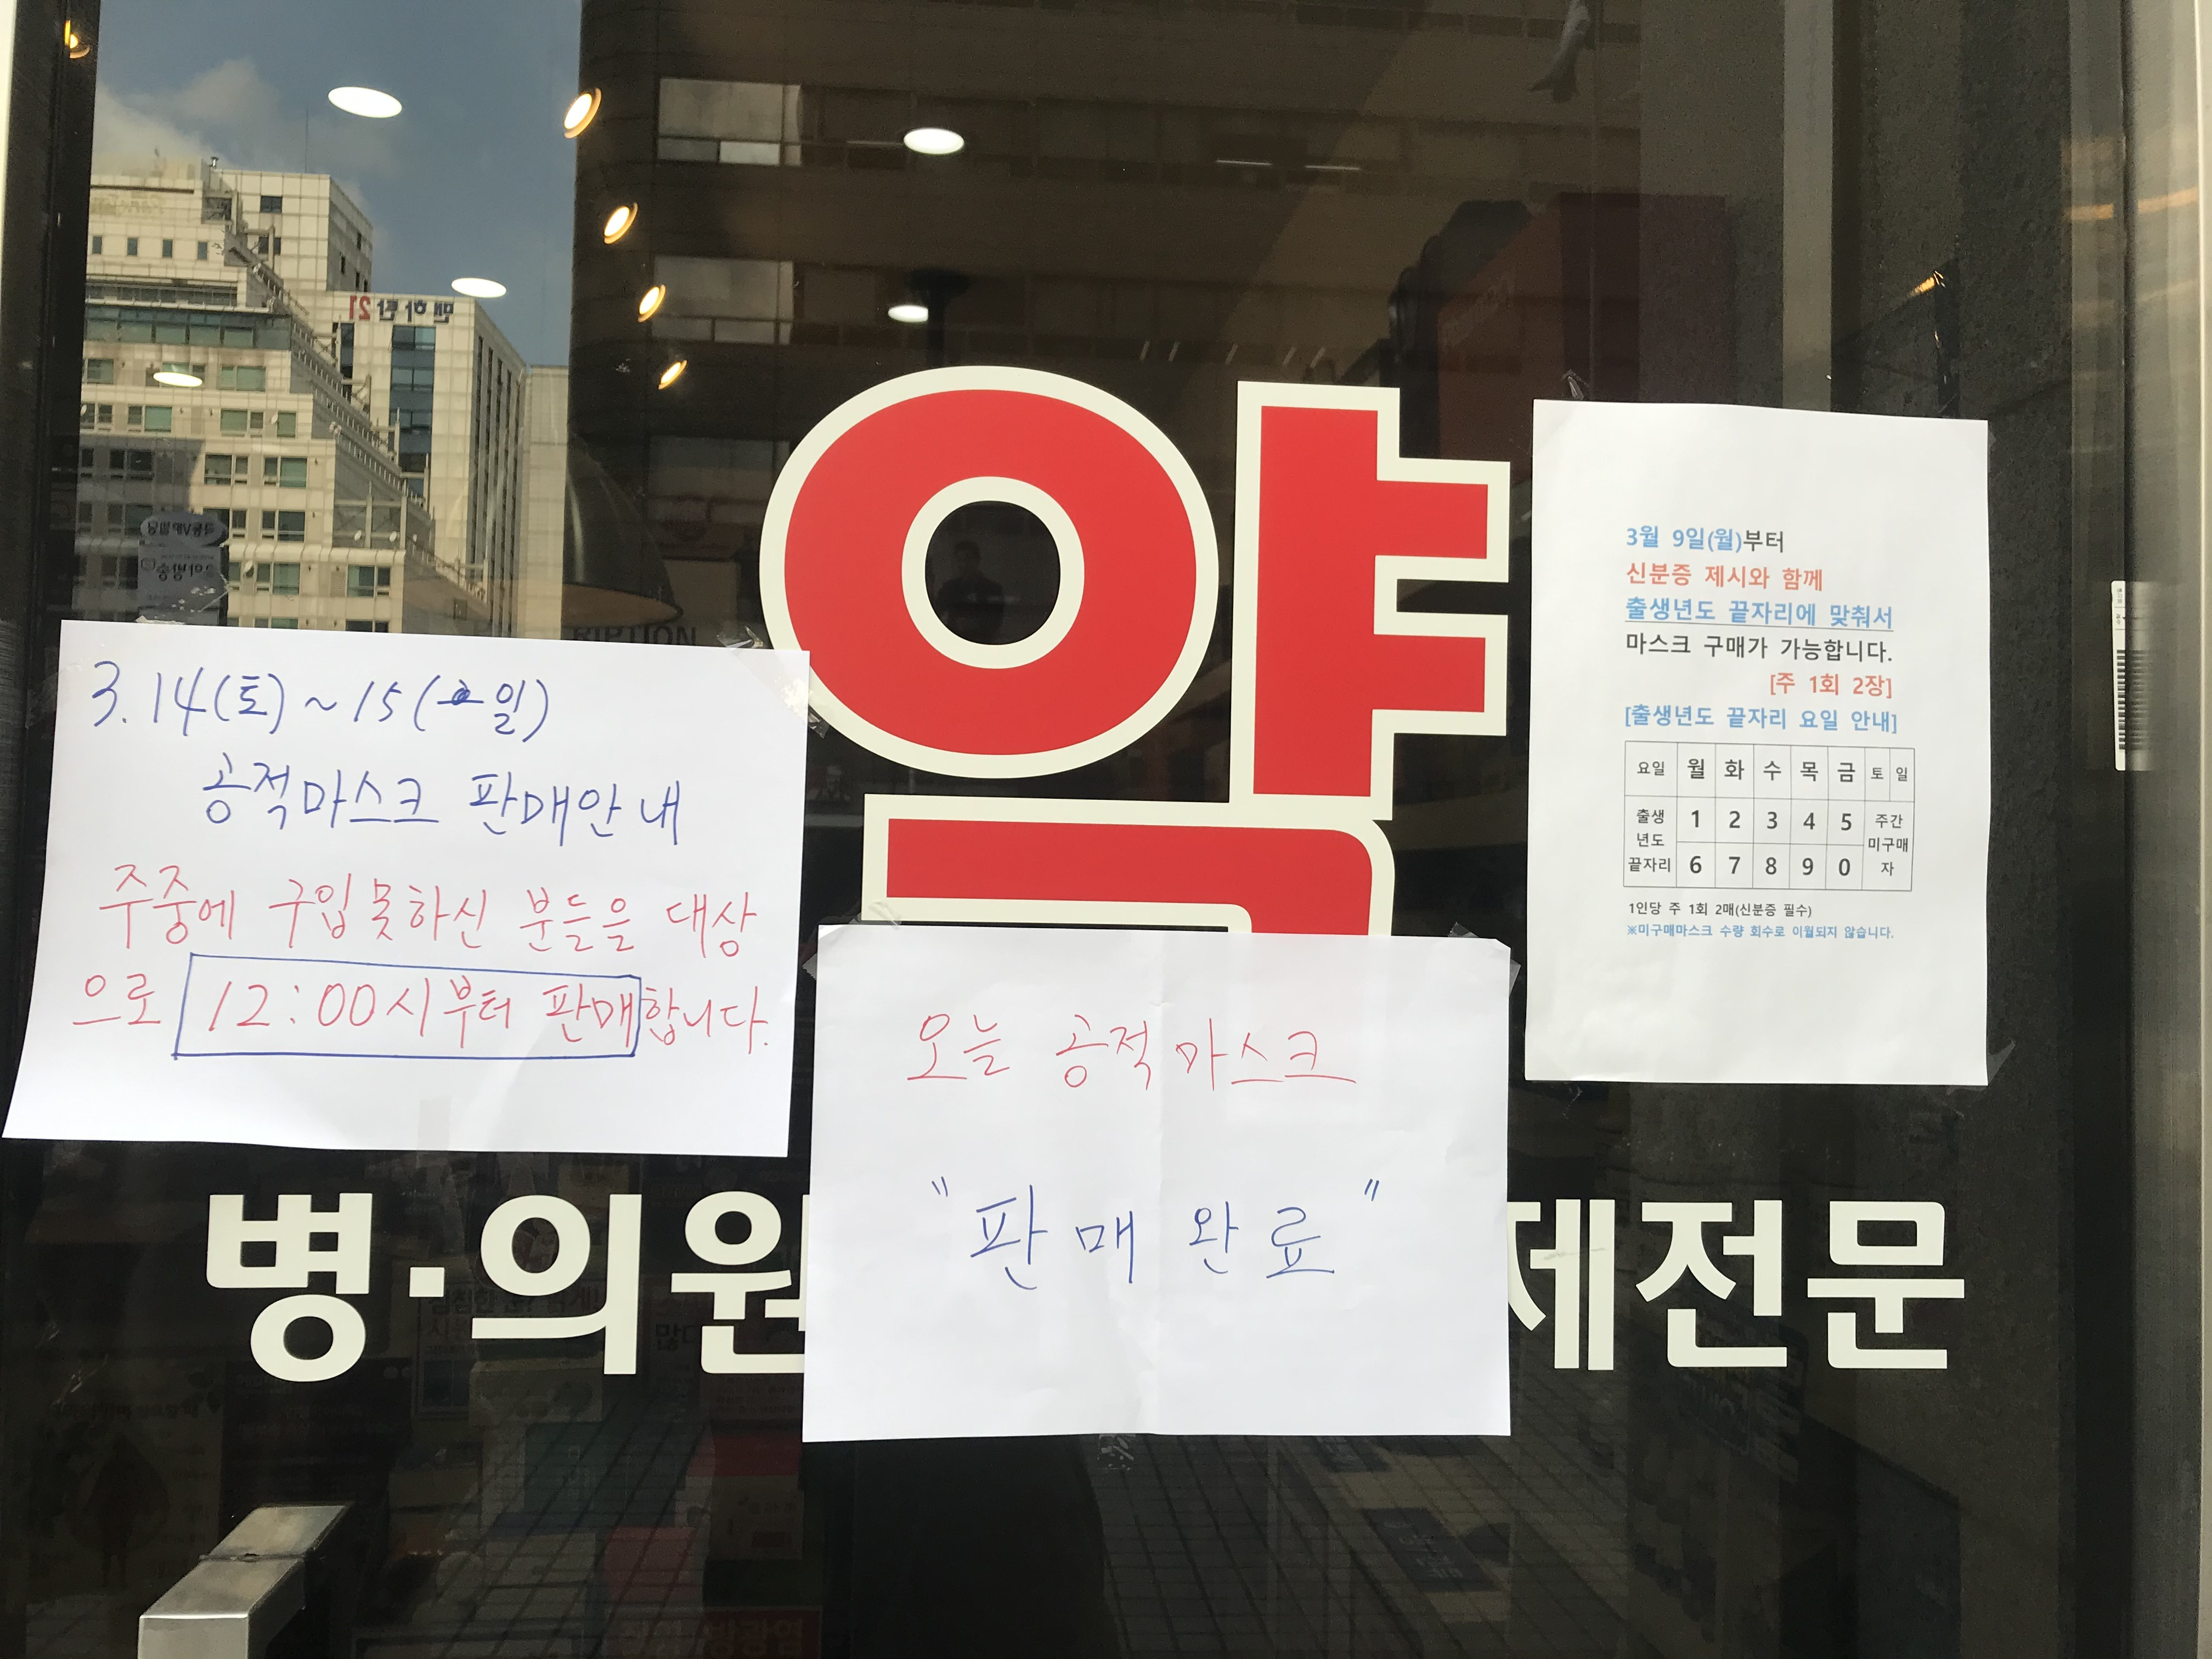 March in South Korea coronavirus and elections